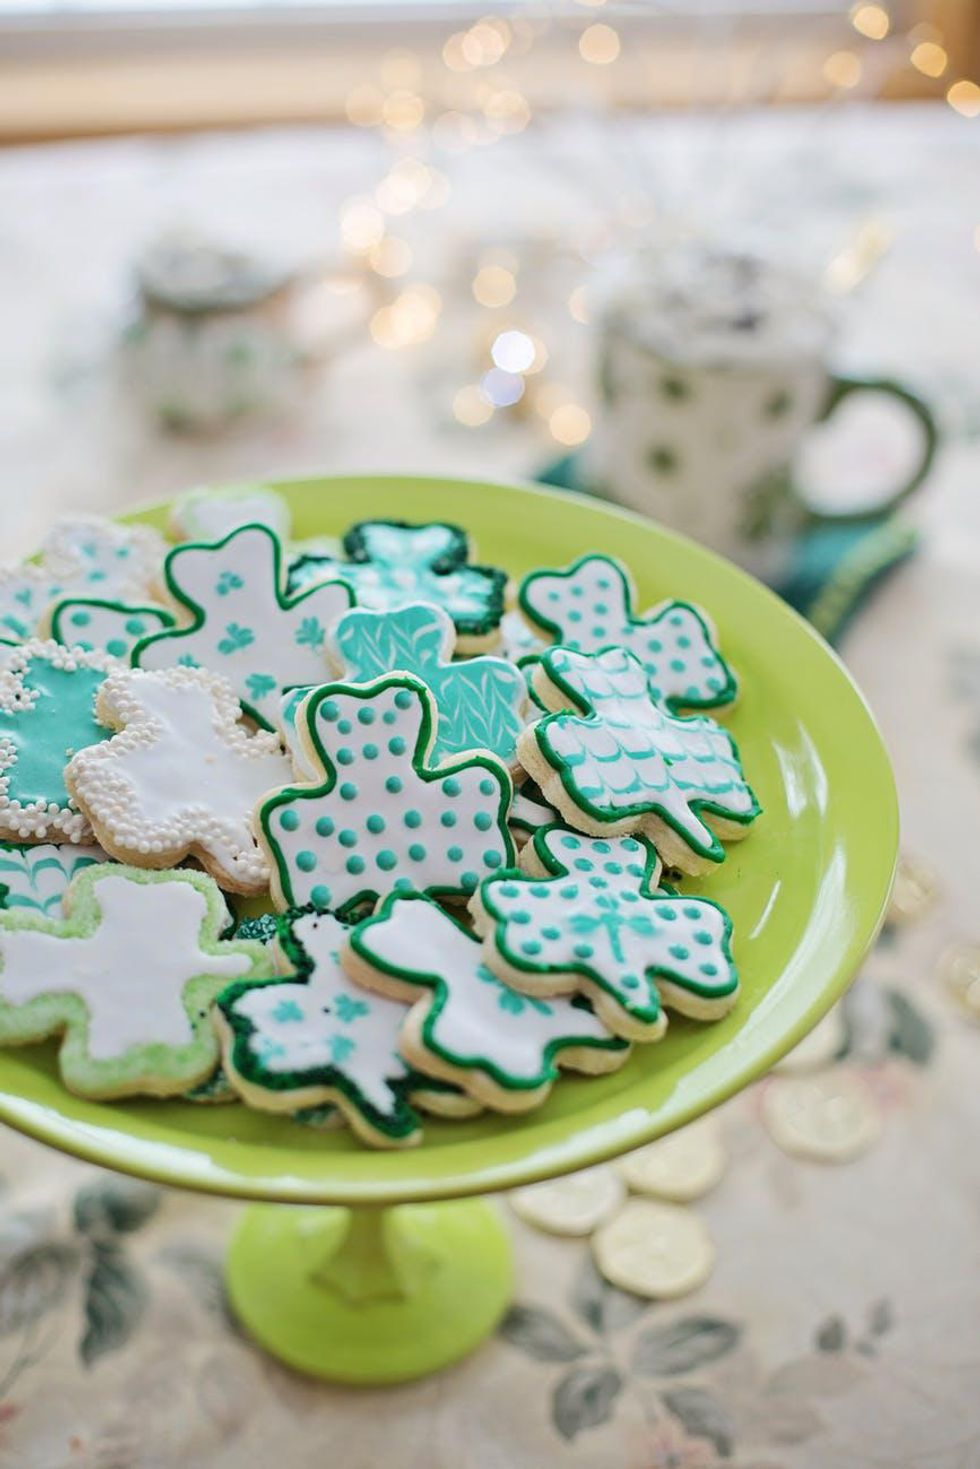 11 St. Paddy's Day-Inspired Recipes That Are Sure To ShamROCK Your Holiday